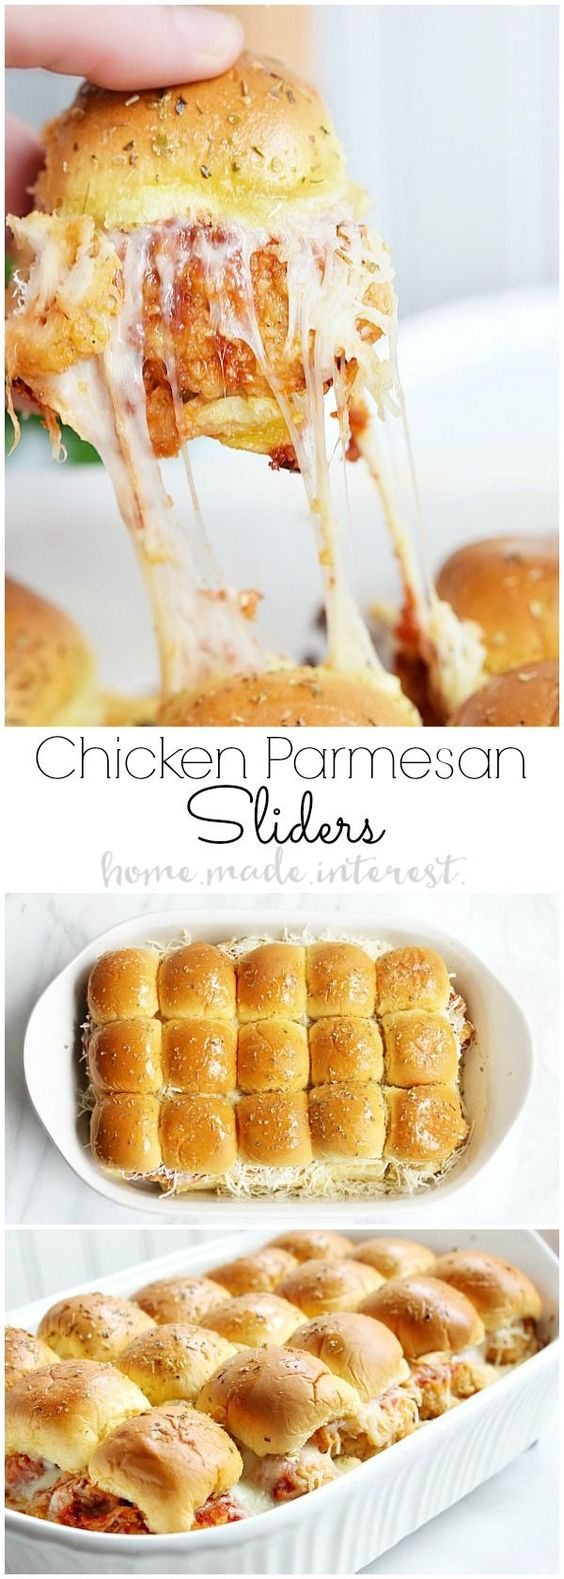 These Chicken Parmesan sliders are an easy recipe that everyone is going to love. Fried chicken tenders, tomato sauce, and lots of mozzarella cheese make this slider recipe a sure win. Whether it is a game day recipe or a father's day recipe you are looking for you can't go wrong with sliders.: